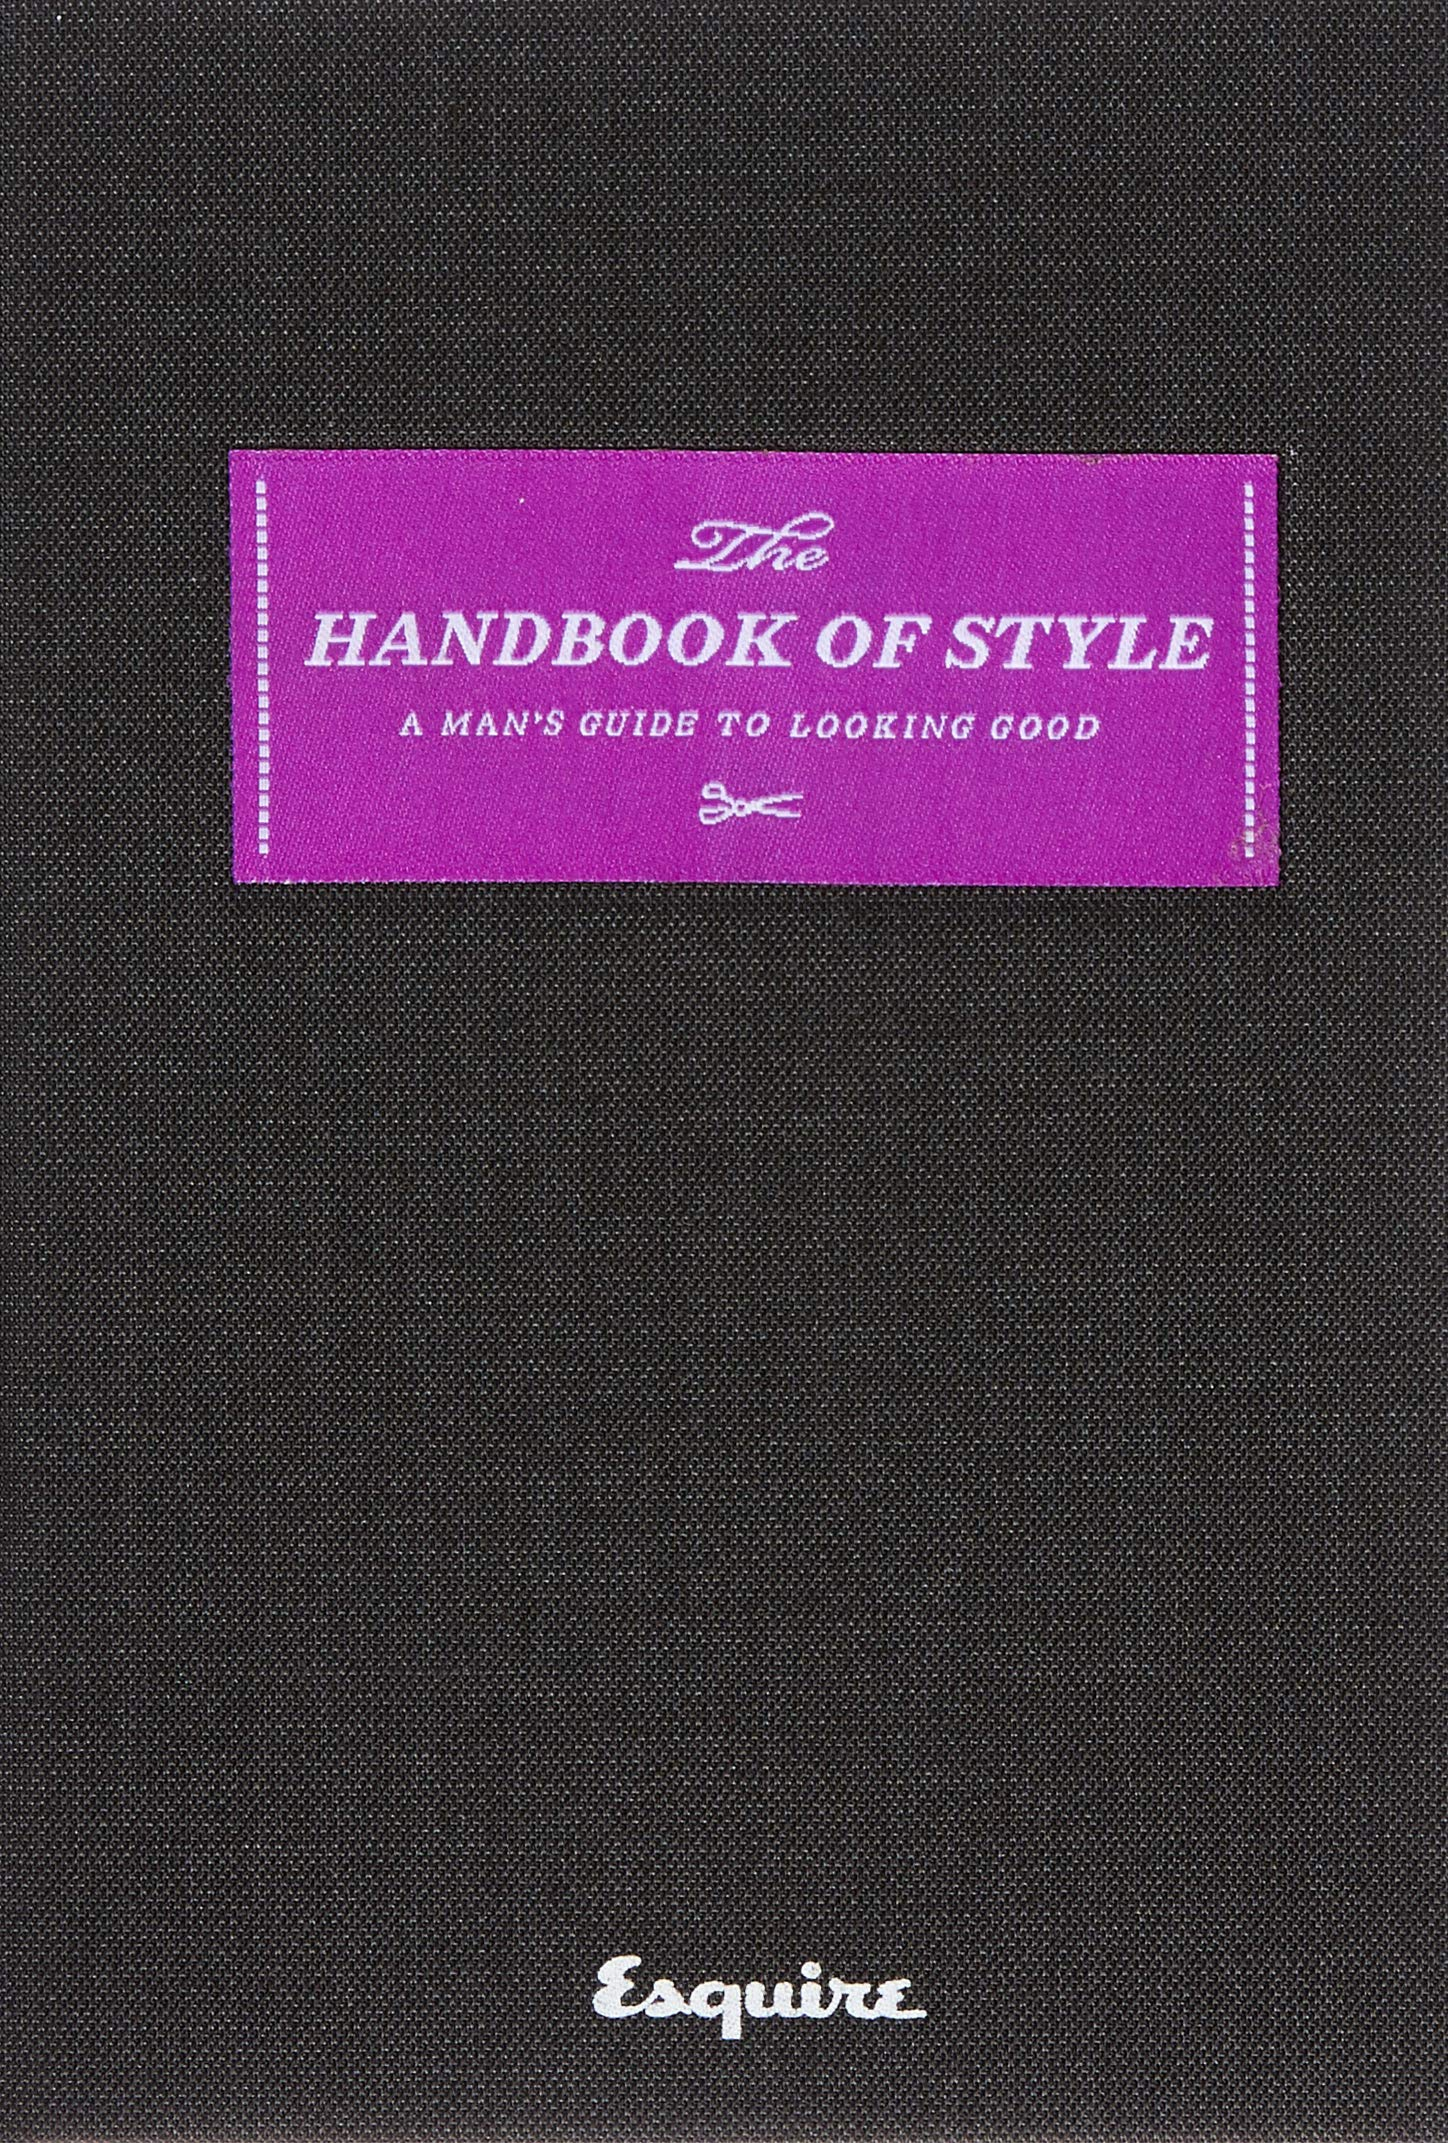 Esquire The Handbook of Style: A Man's Guide to